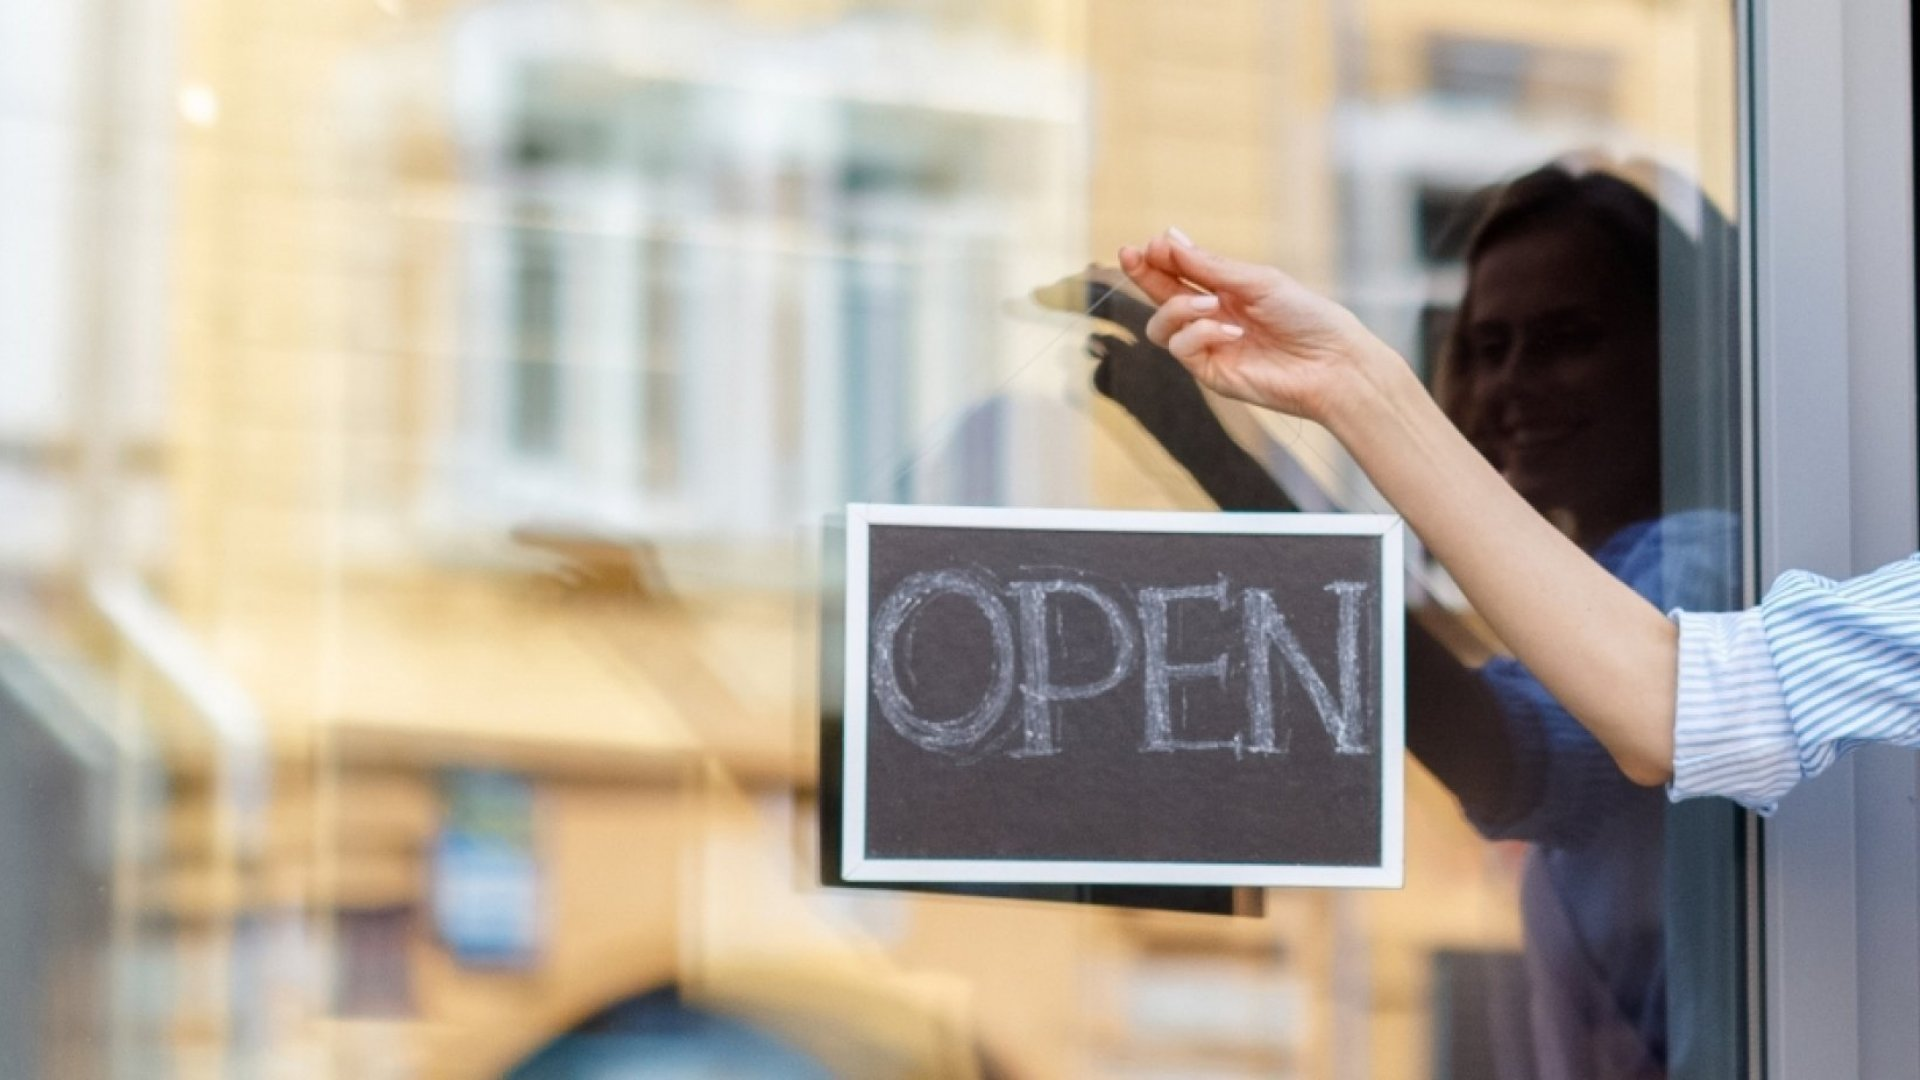 5 Small Business Trends to Watch in 2020